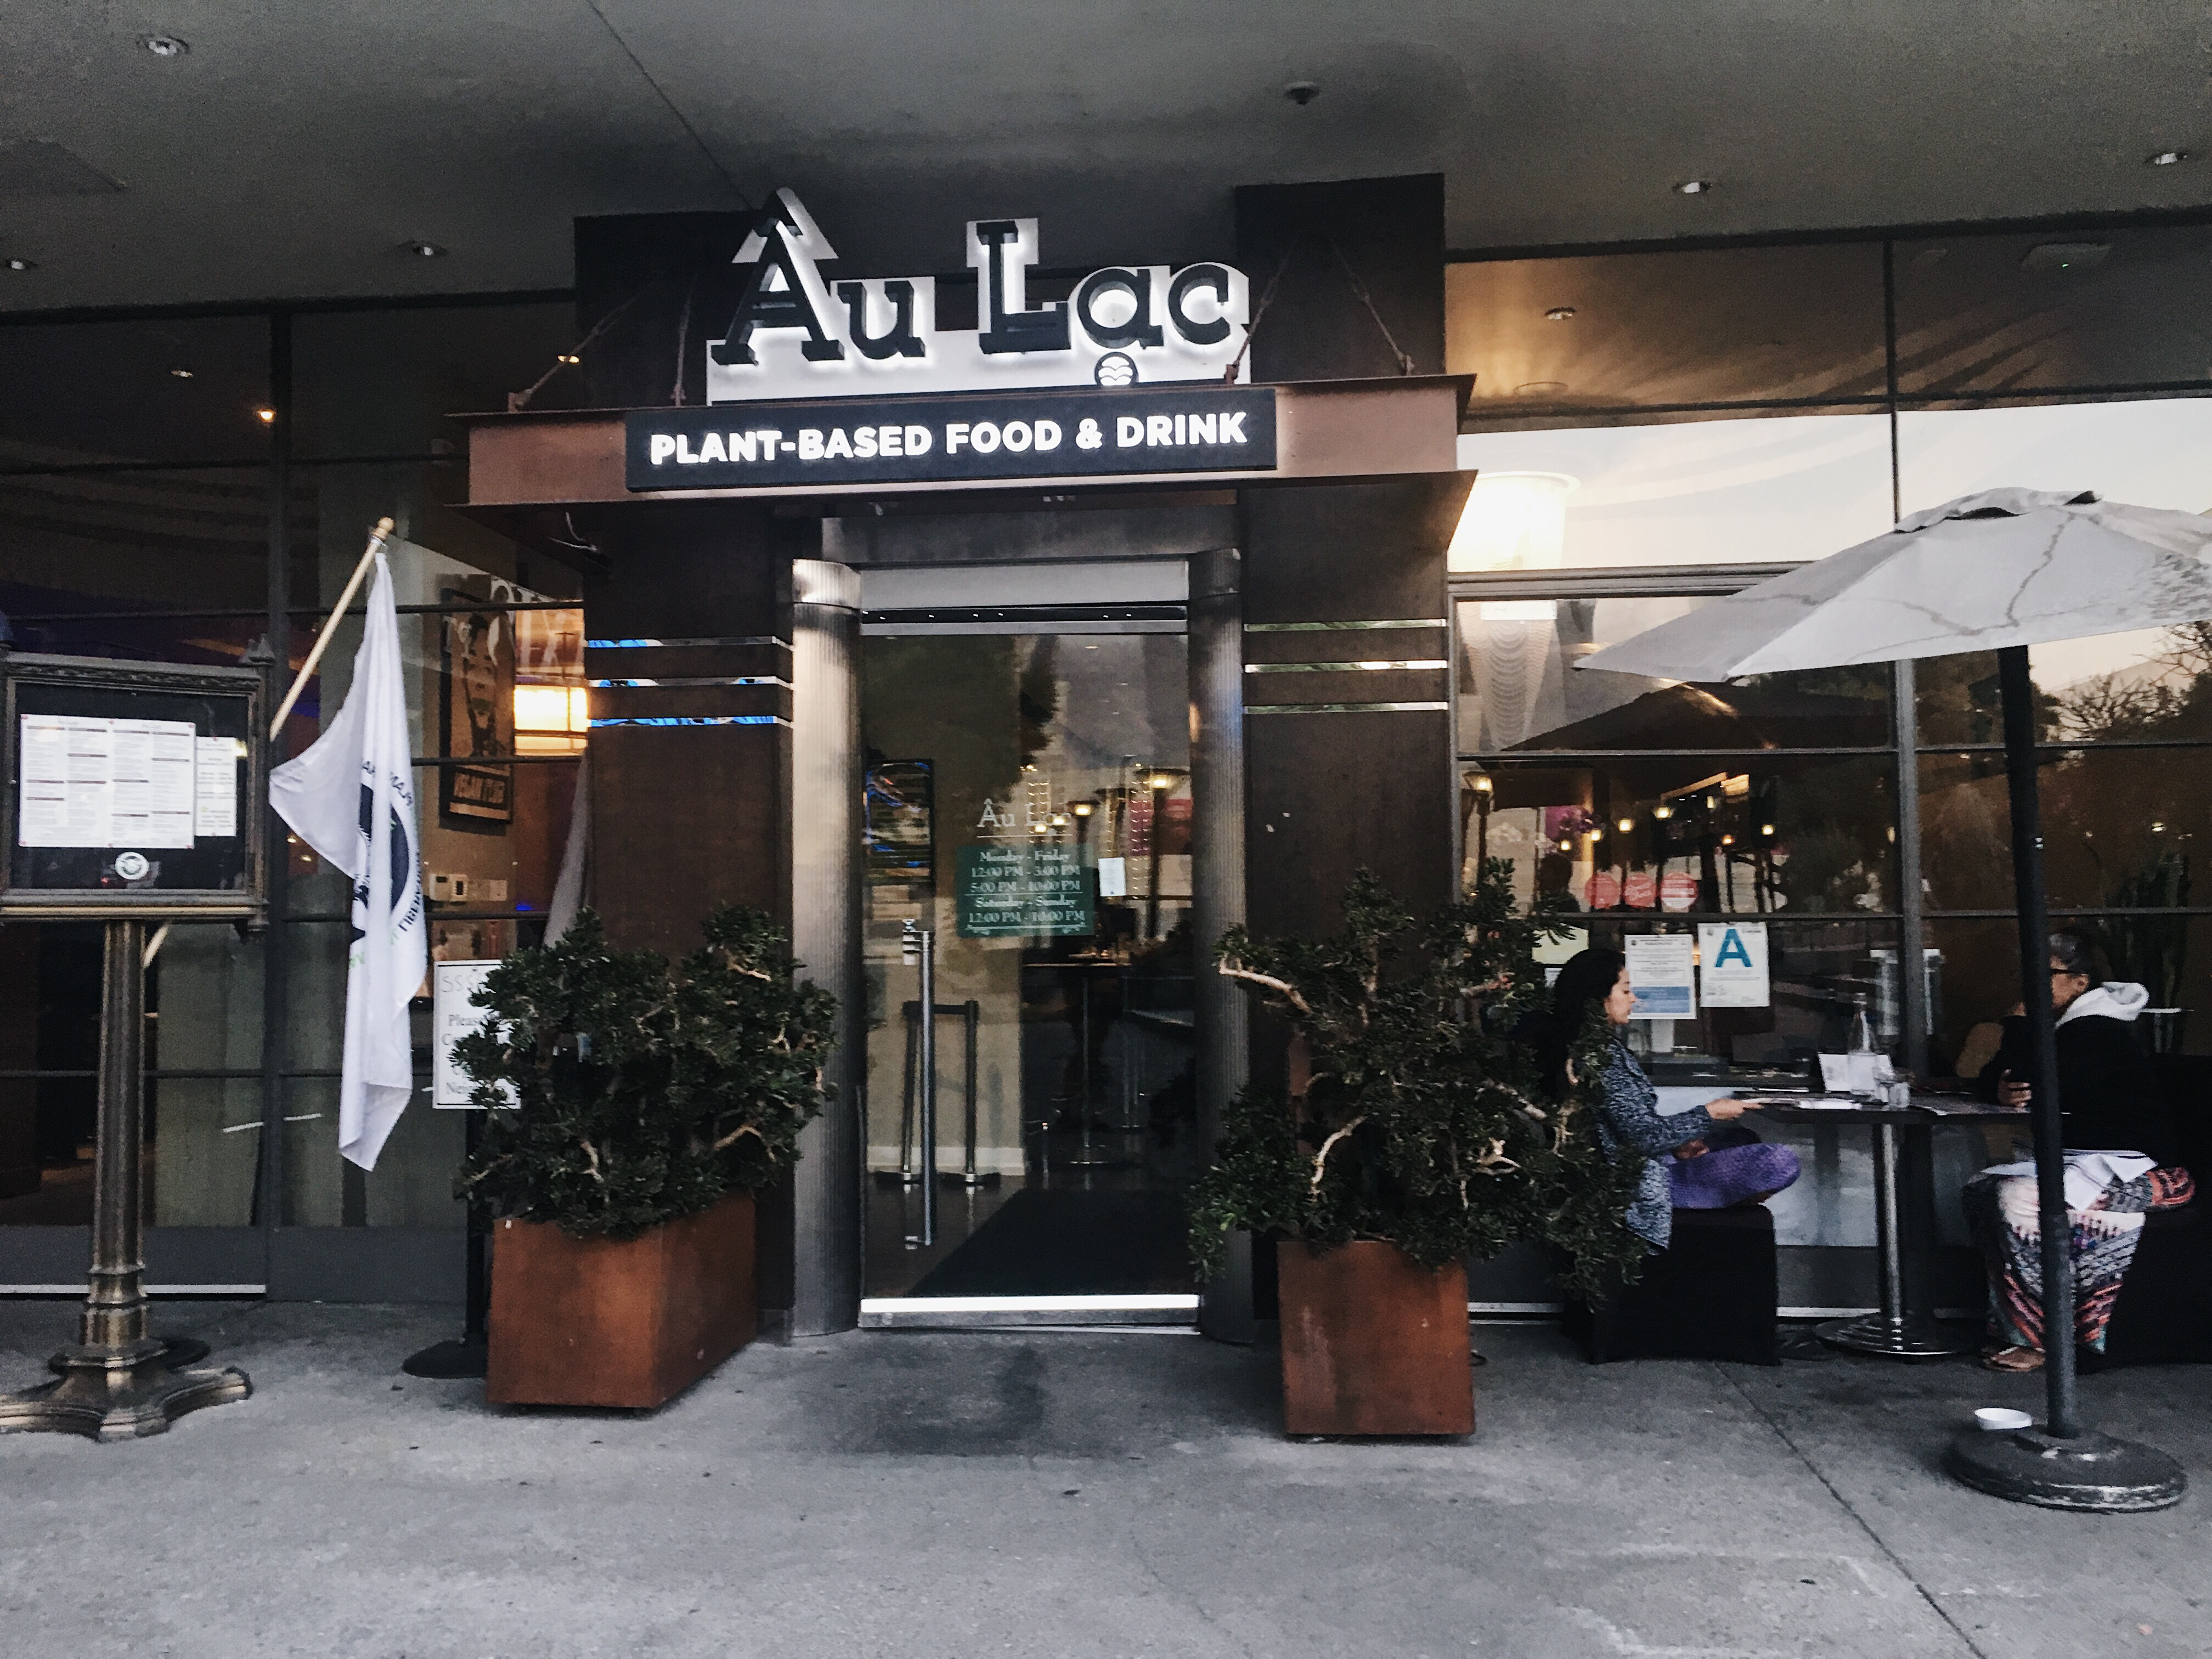 Âu Lac in Downtown Los Angles